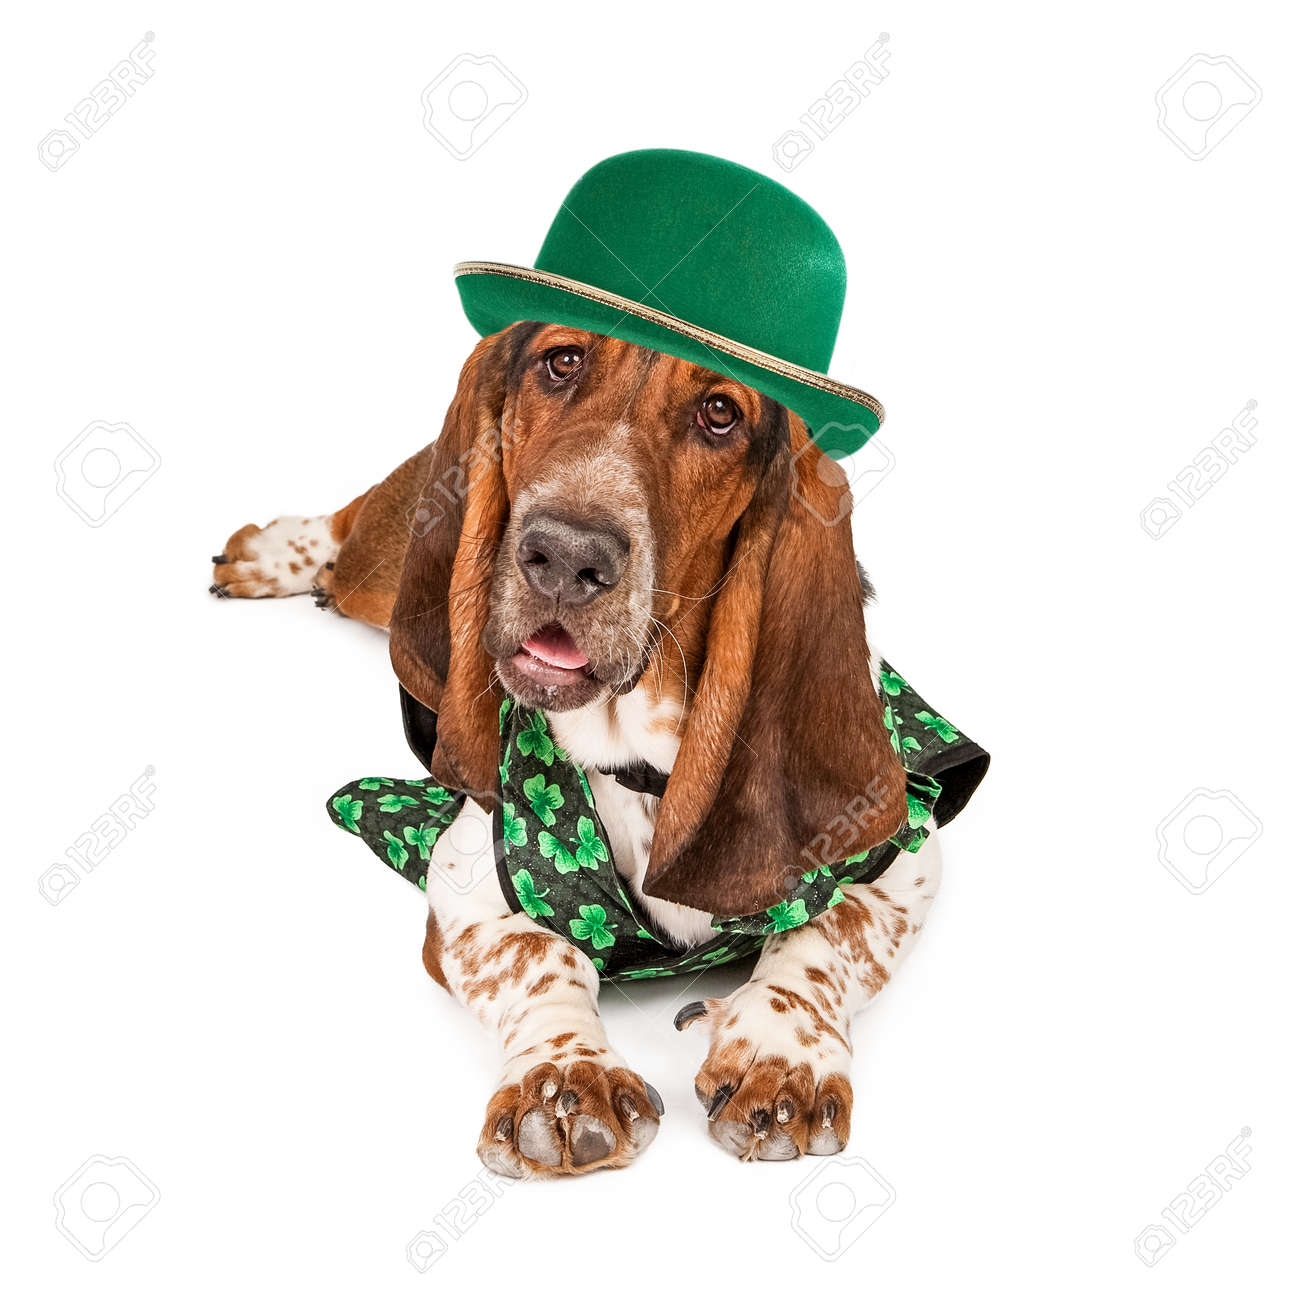 A Funny Photo Of A Basset Hound Dog Wearing An Irish St Patrick S Stock Photo Picture And Royalty Free Image Image 36094091